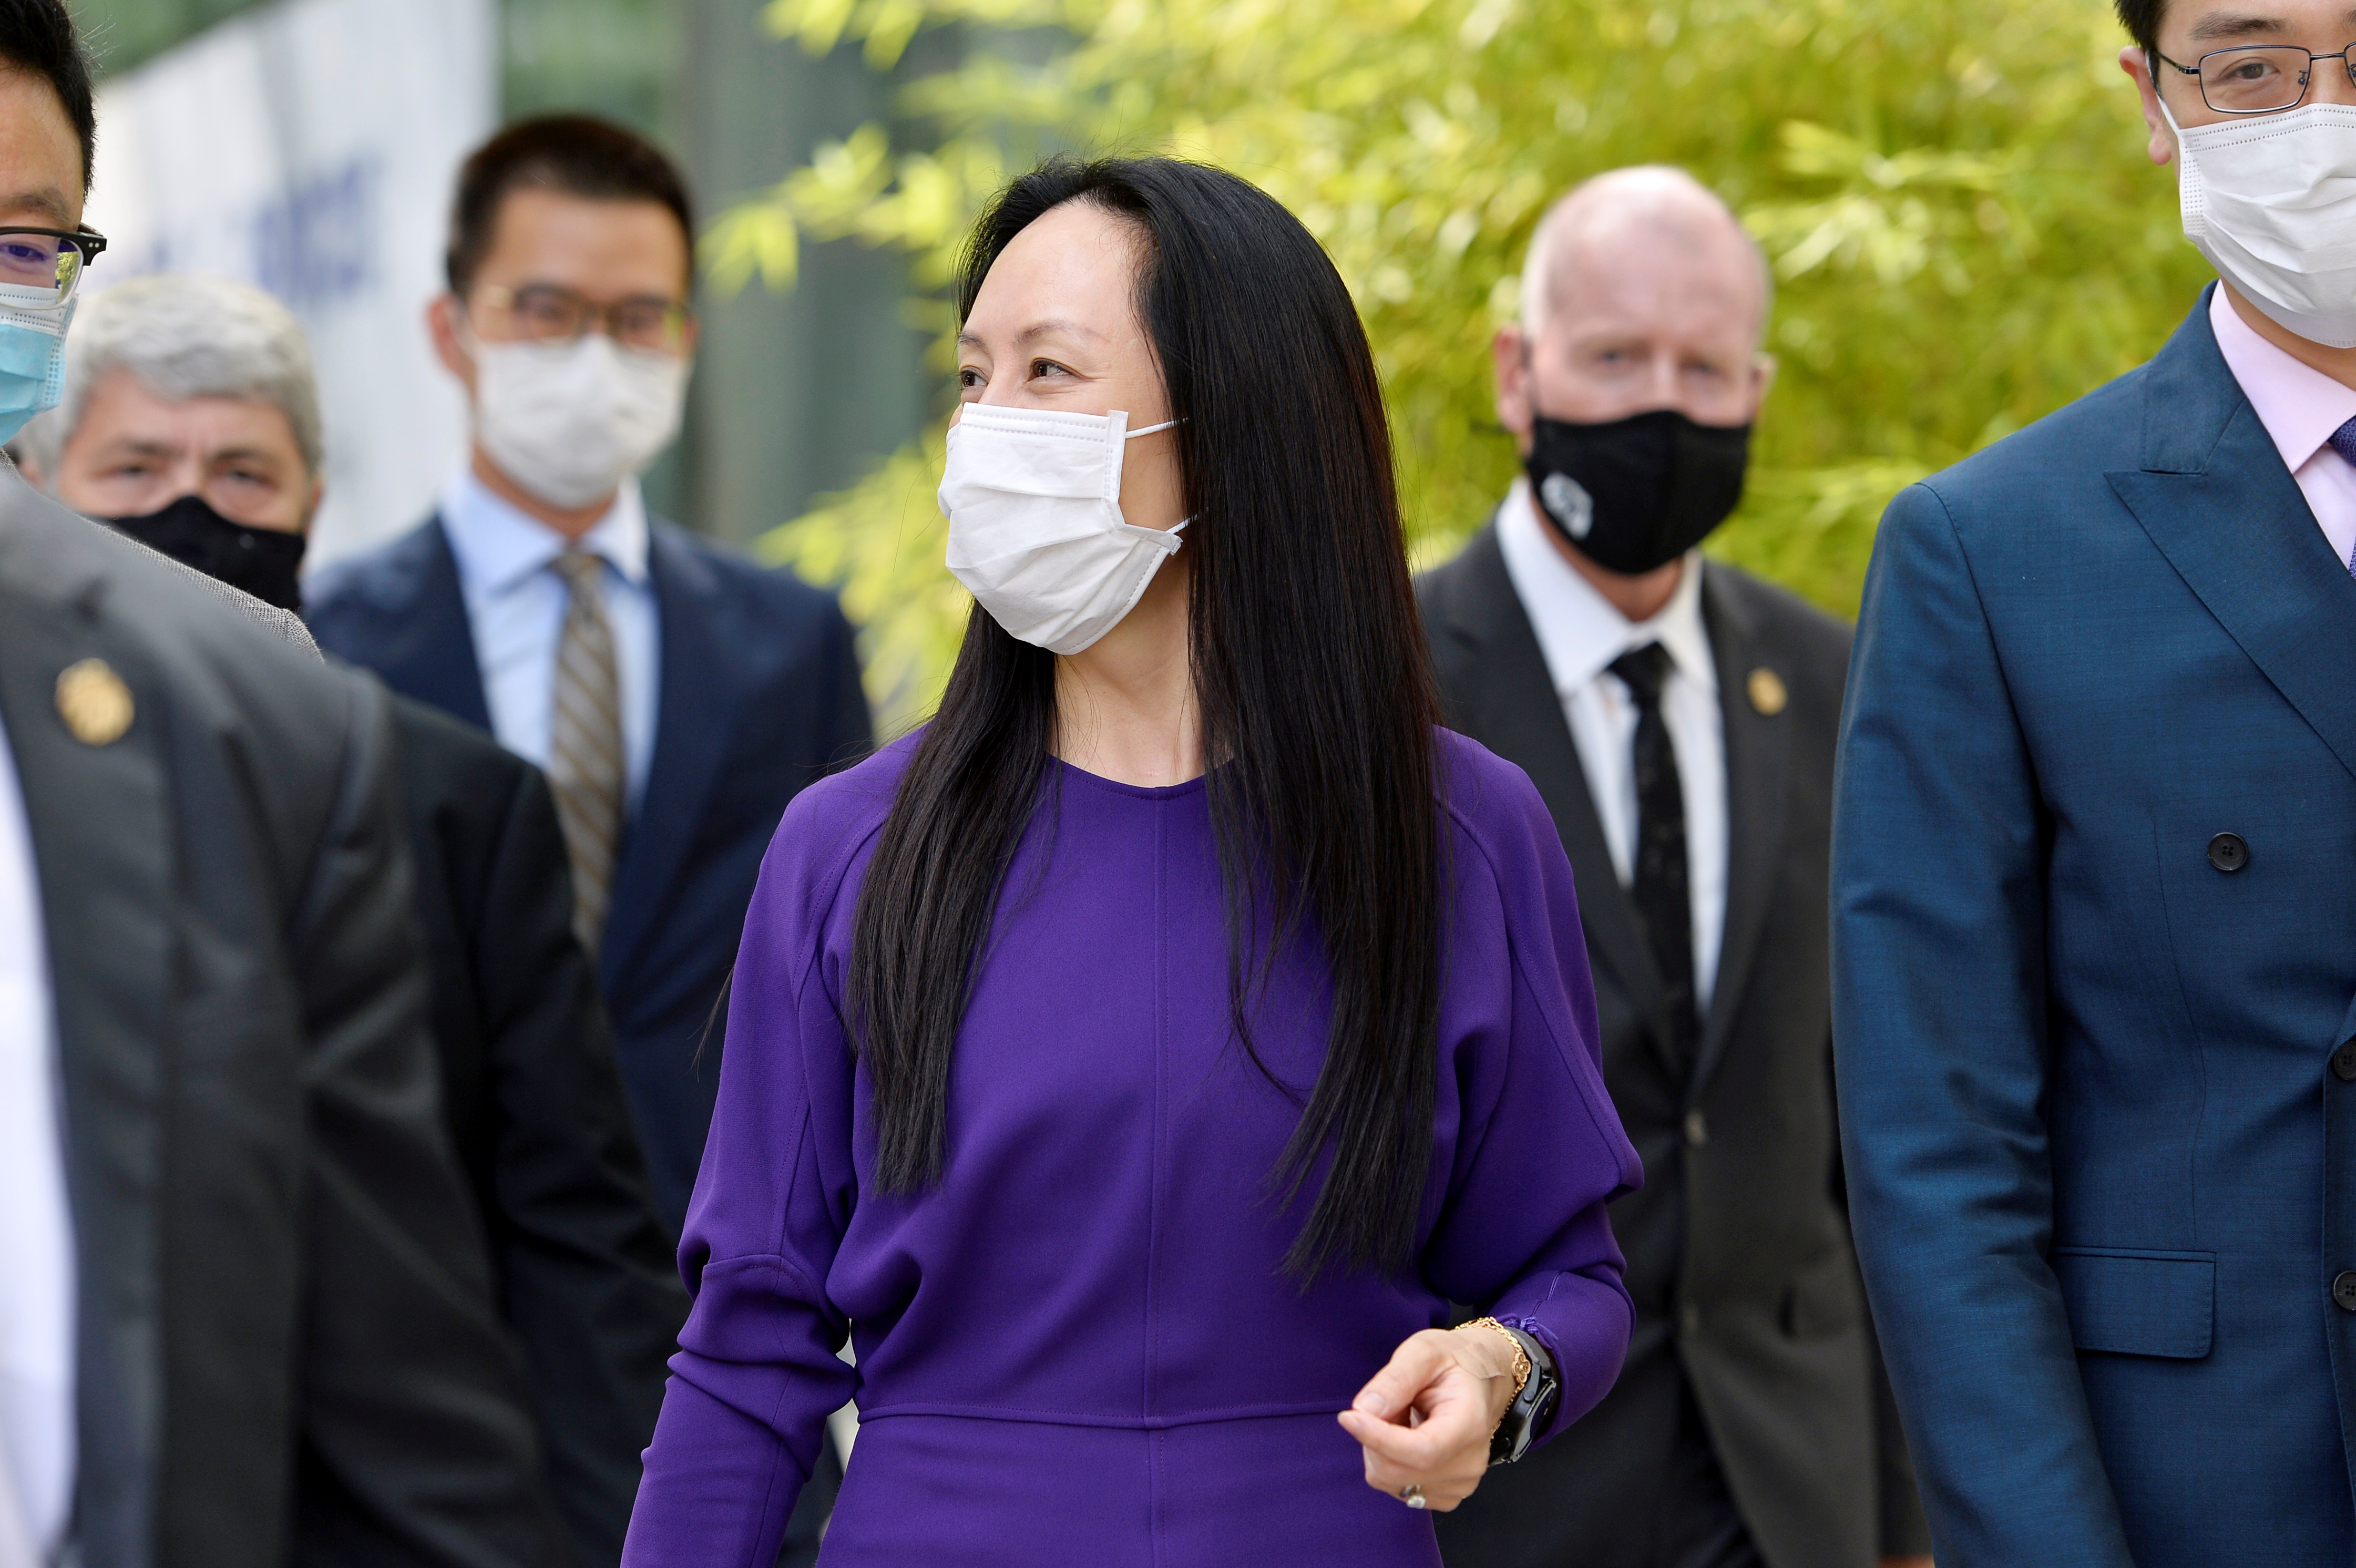 Huawei Technologies Chief Financial Officer Meng Wanzhou returns to a court hearing following a lunch break in Vancouver, British Columbia, Canada, August 18, 2021. REUTERS/Jennifer Gauthier